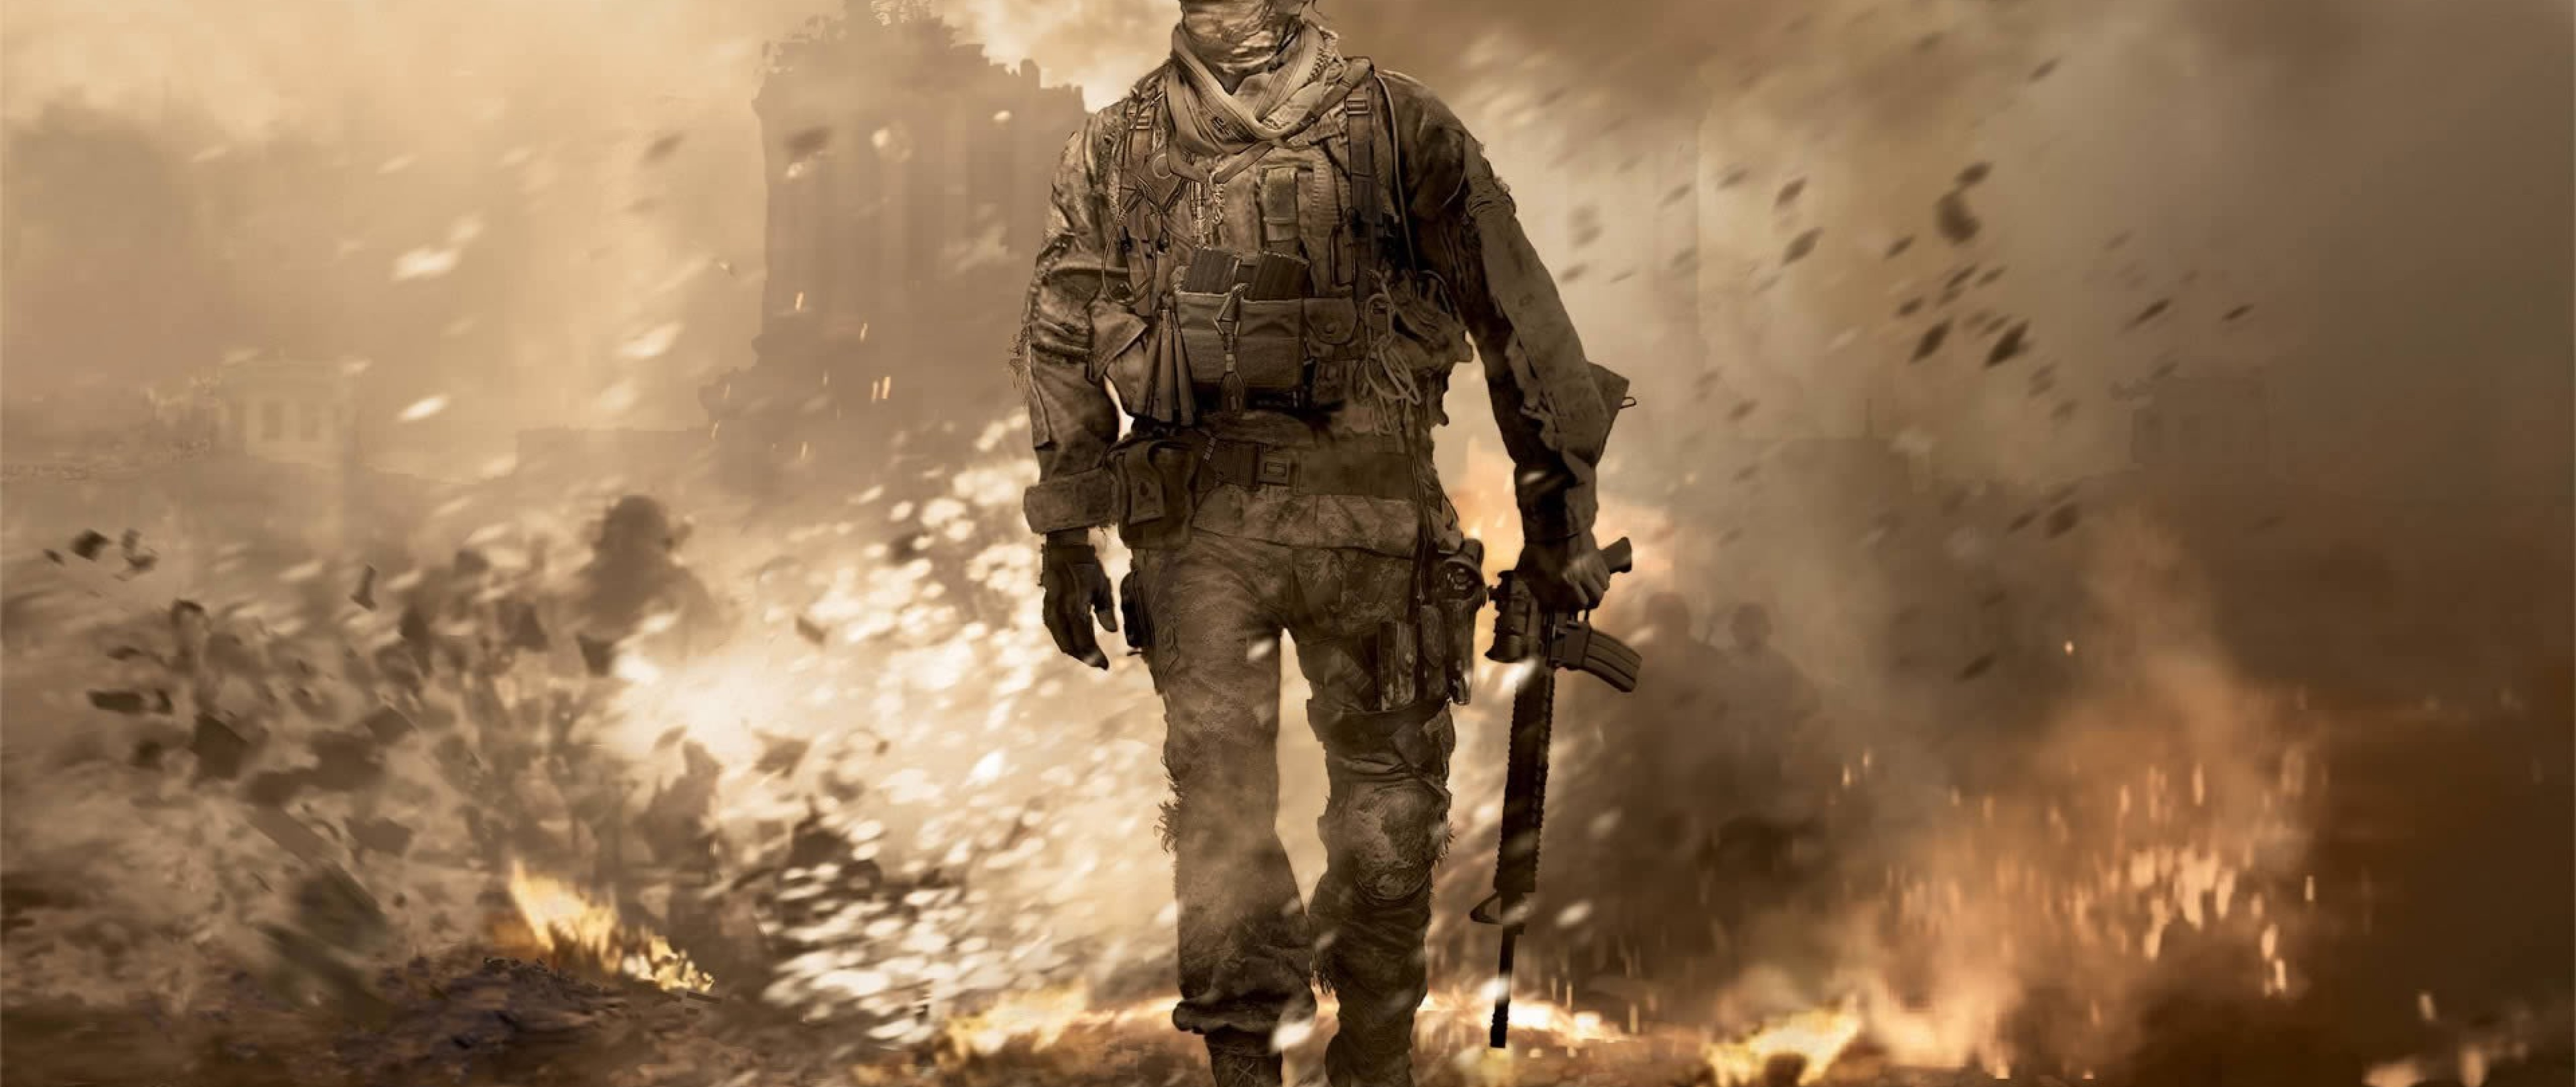 Call Of Duty Modern Warfare 2 Wallpaper For Desktop And Mobiles 4k